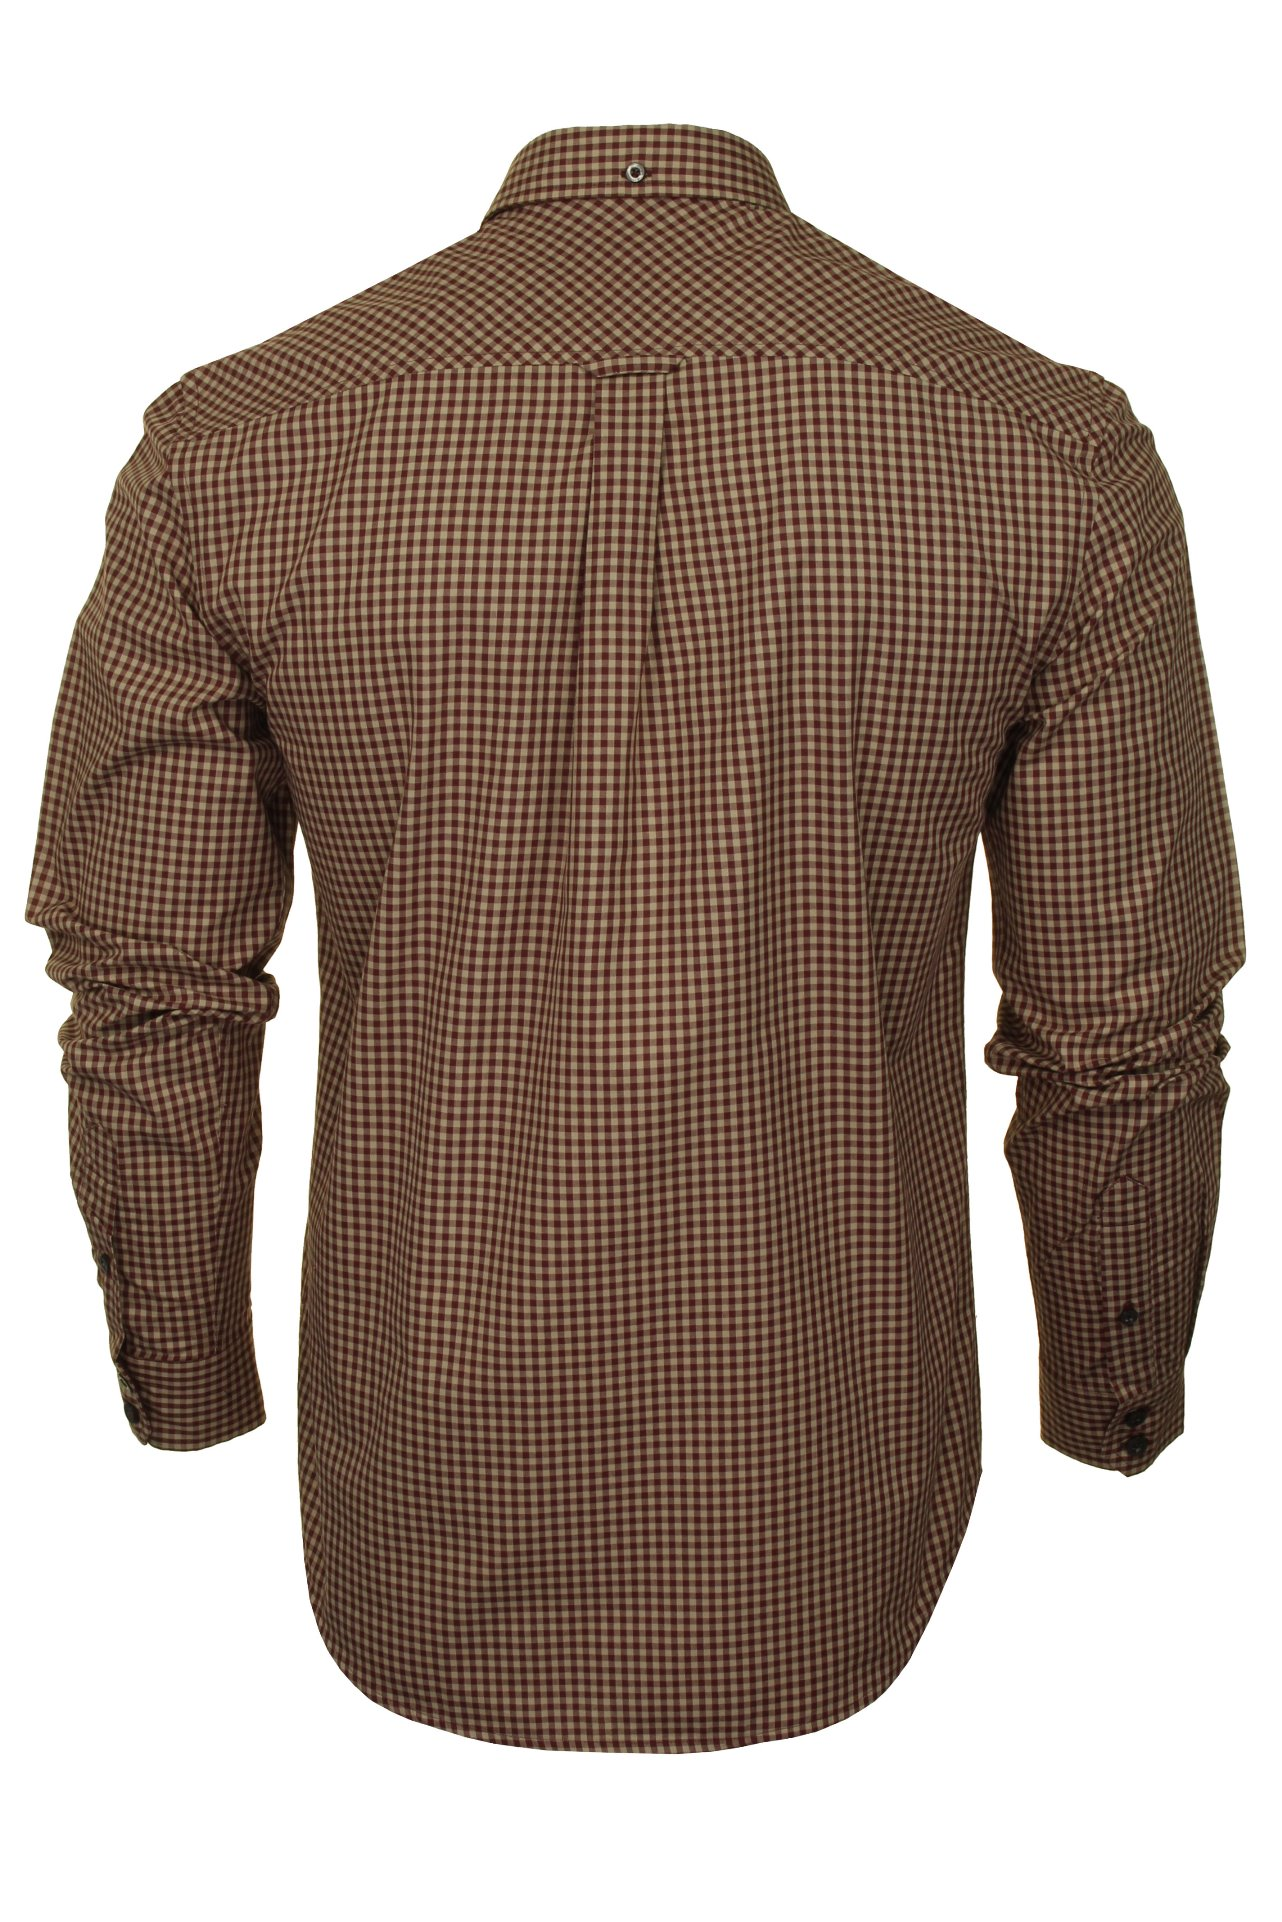 Ben-Sherman-Mens-Long-Sleeved-Gingham-Check-Shirt thumbnail 8